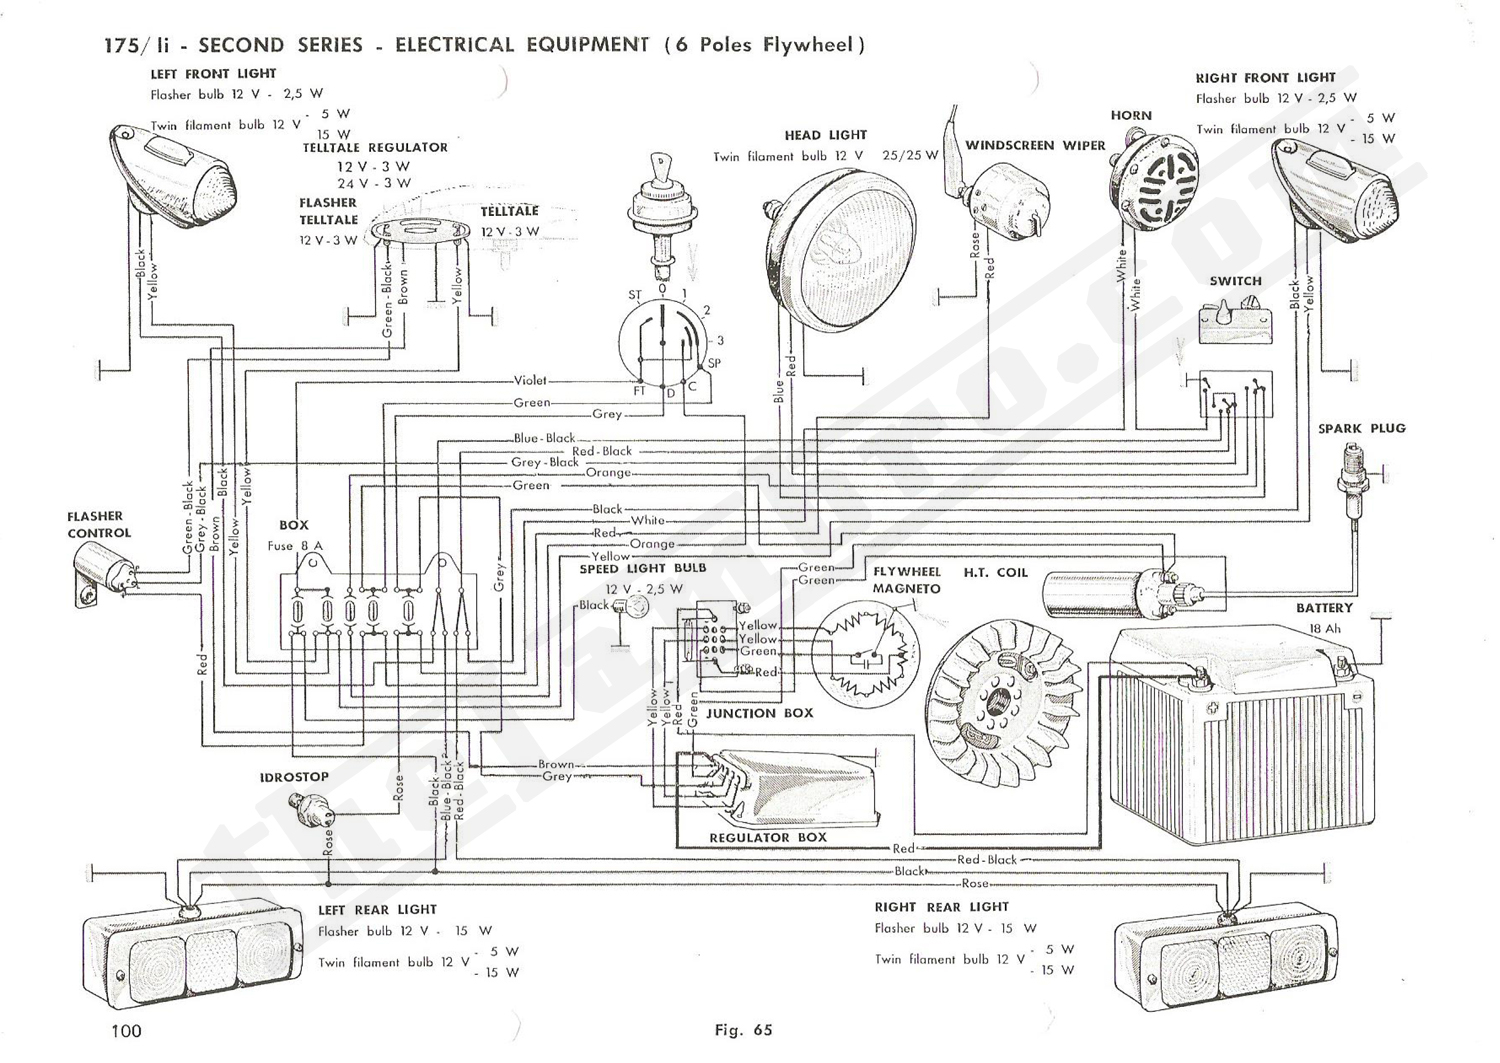 apollo smoke detectors series 65 wiring diagram explain krebs cycle with 24 images